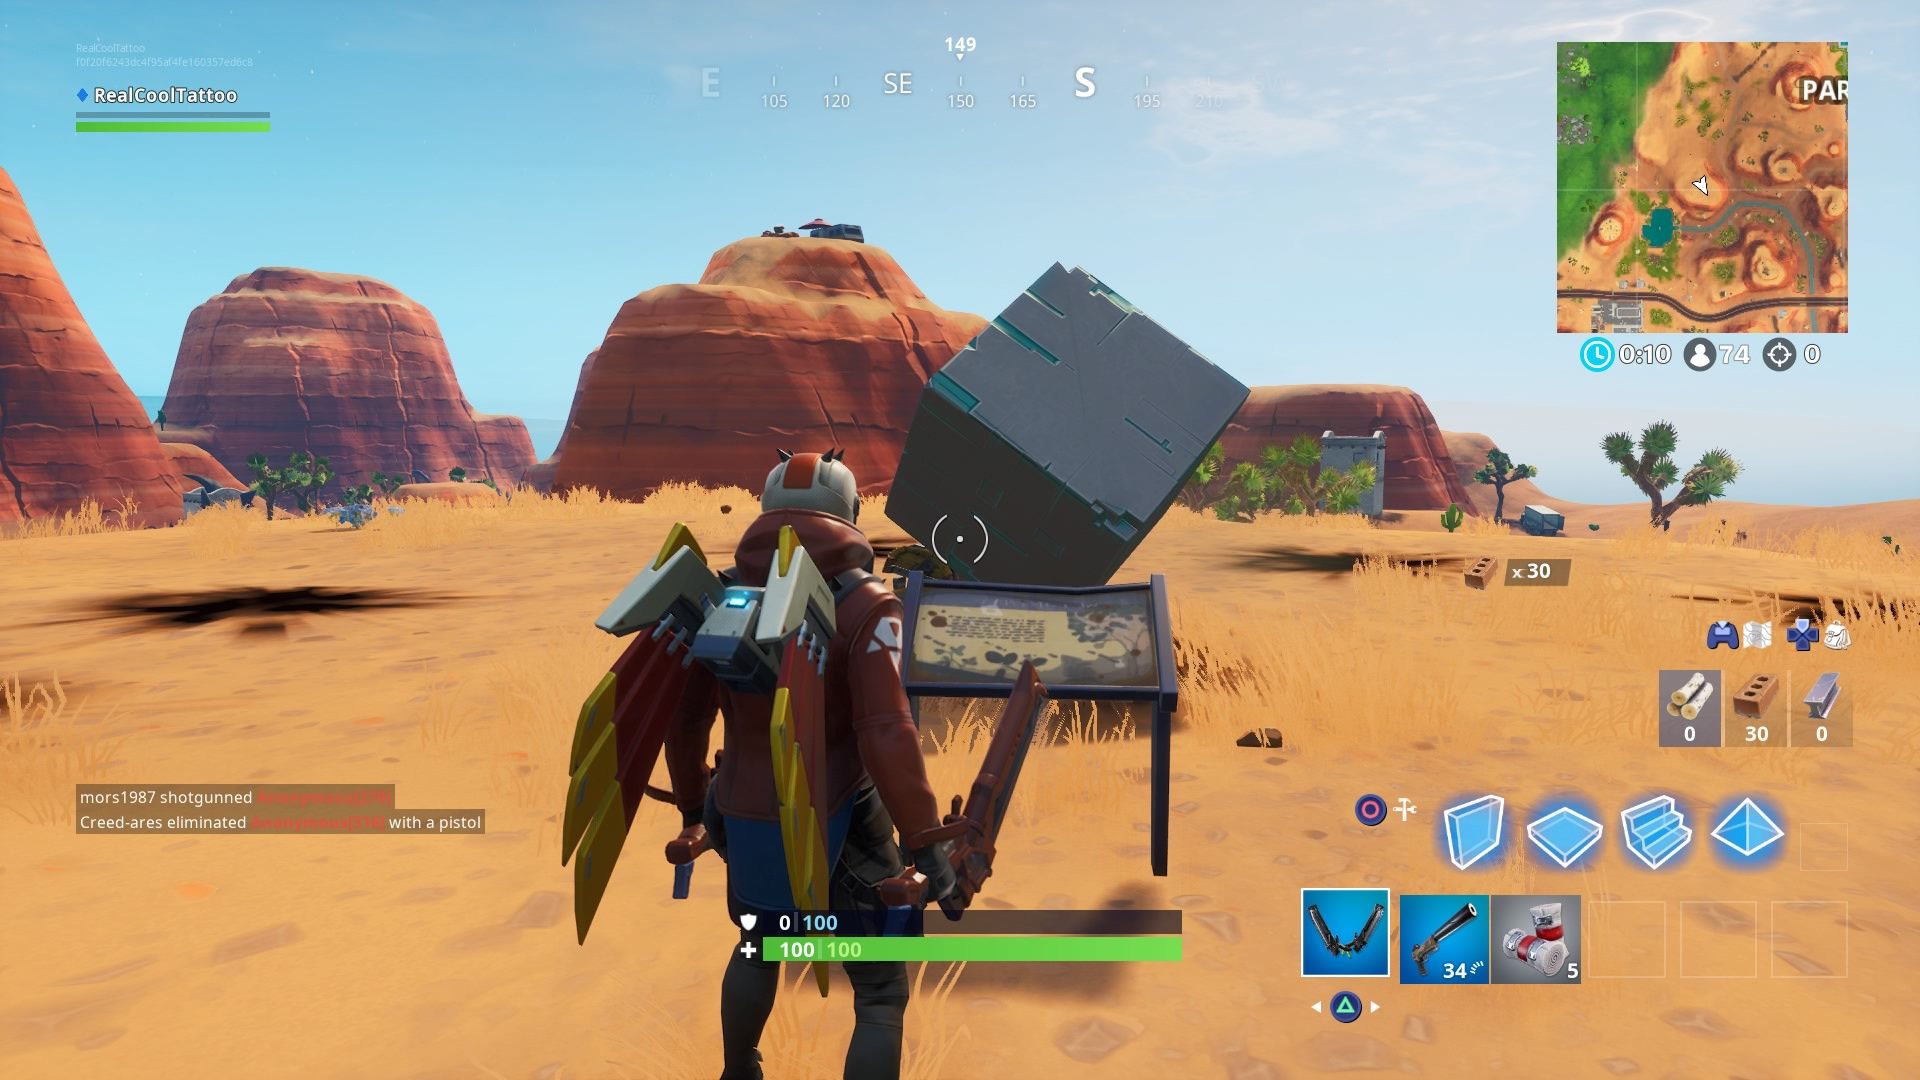 Fortnite Visit A Memorial To A Cube In The Desert Or By A